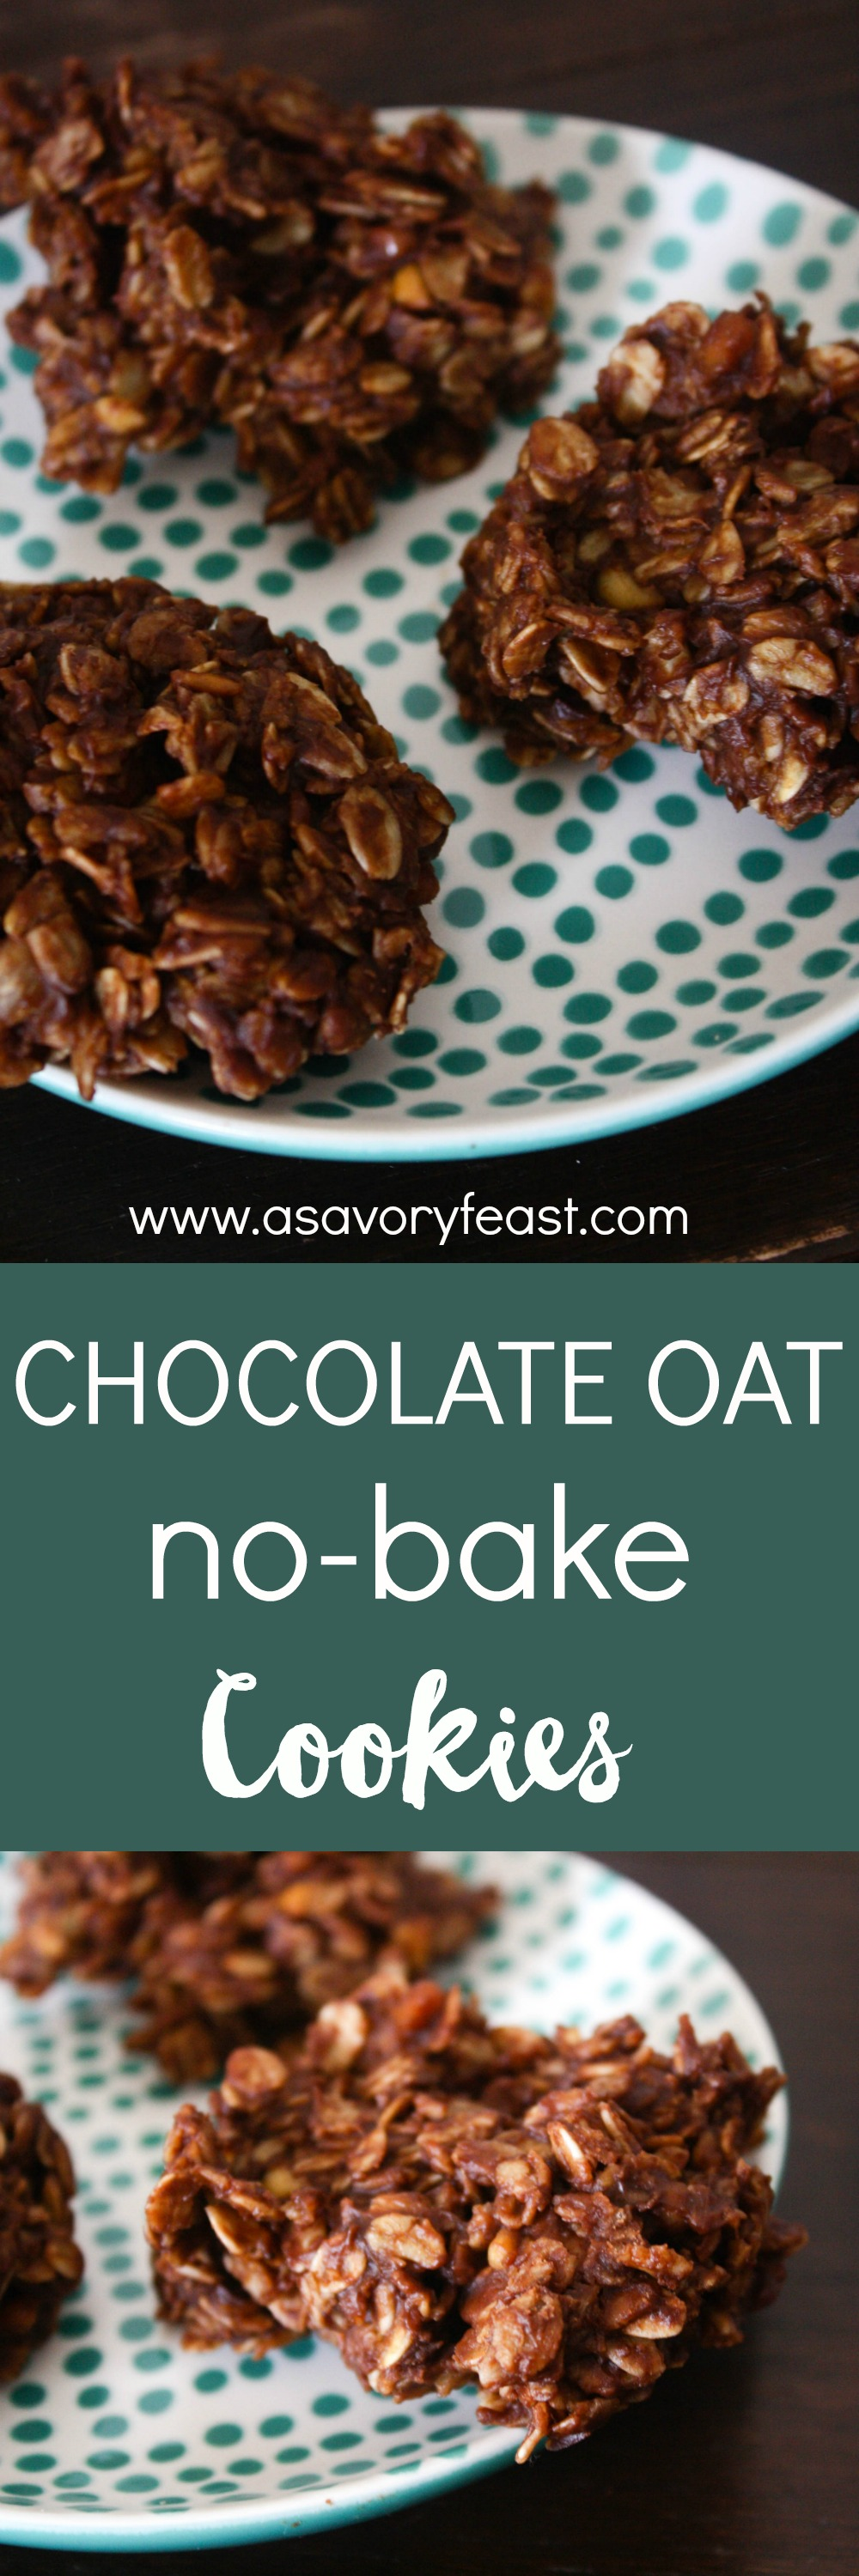 These Chocolate Oat No-Bake Cookies are so easy to make and they are good for you, too! Gluten free and refined sugar free, sweetened with maple syrup. Mix them up in about 10 minutes! It doesn't get any easier than that. | No Bake Cookies | Easy Cookie Recipe | Healthy Cookies | Guilt Free Cookies